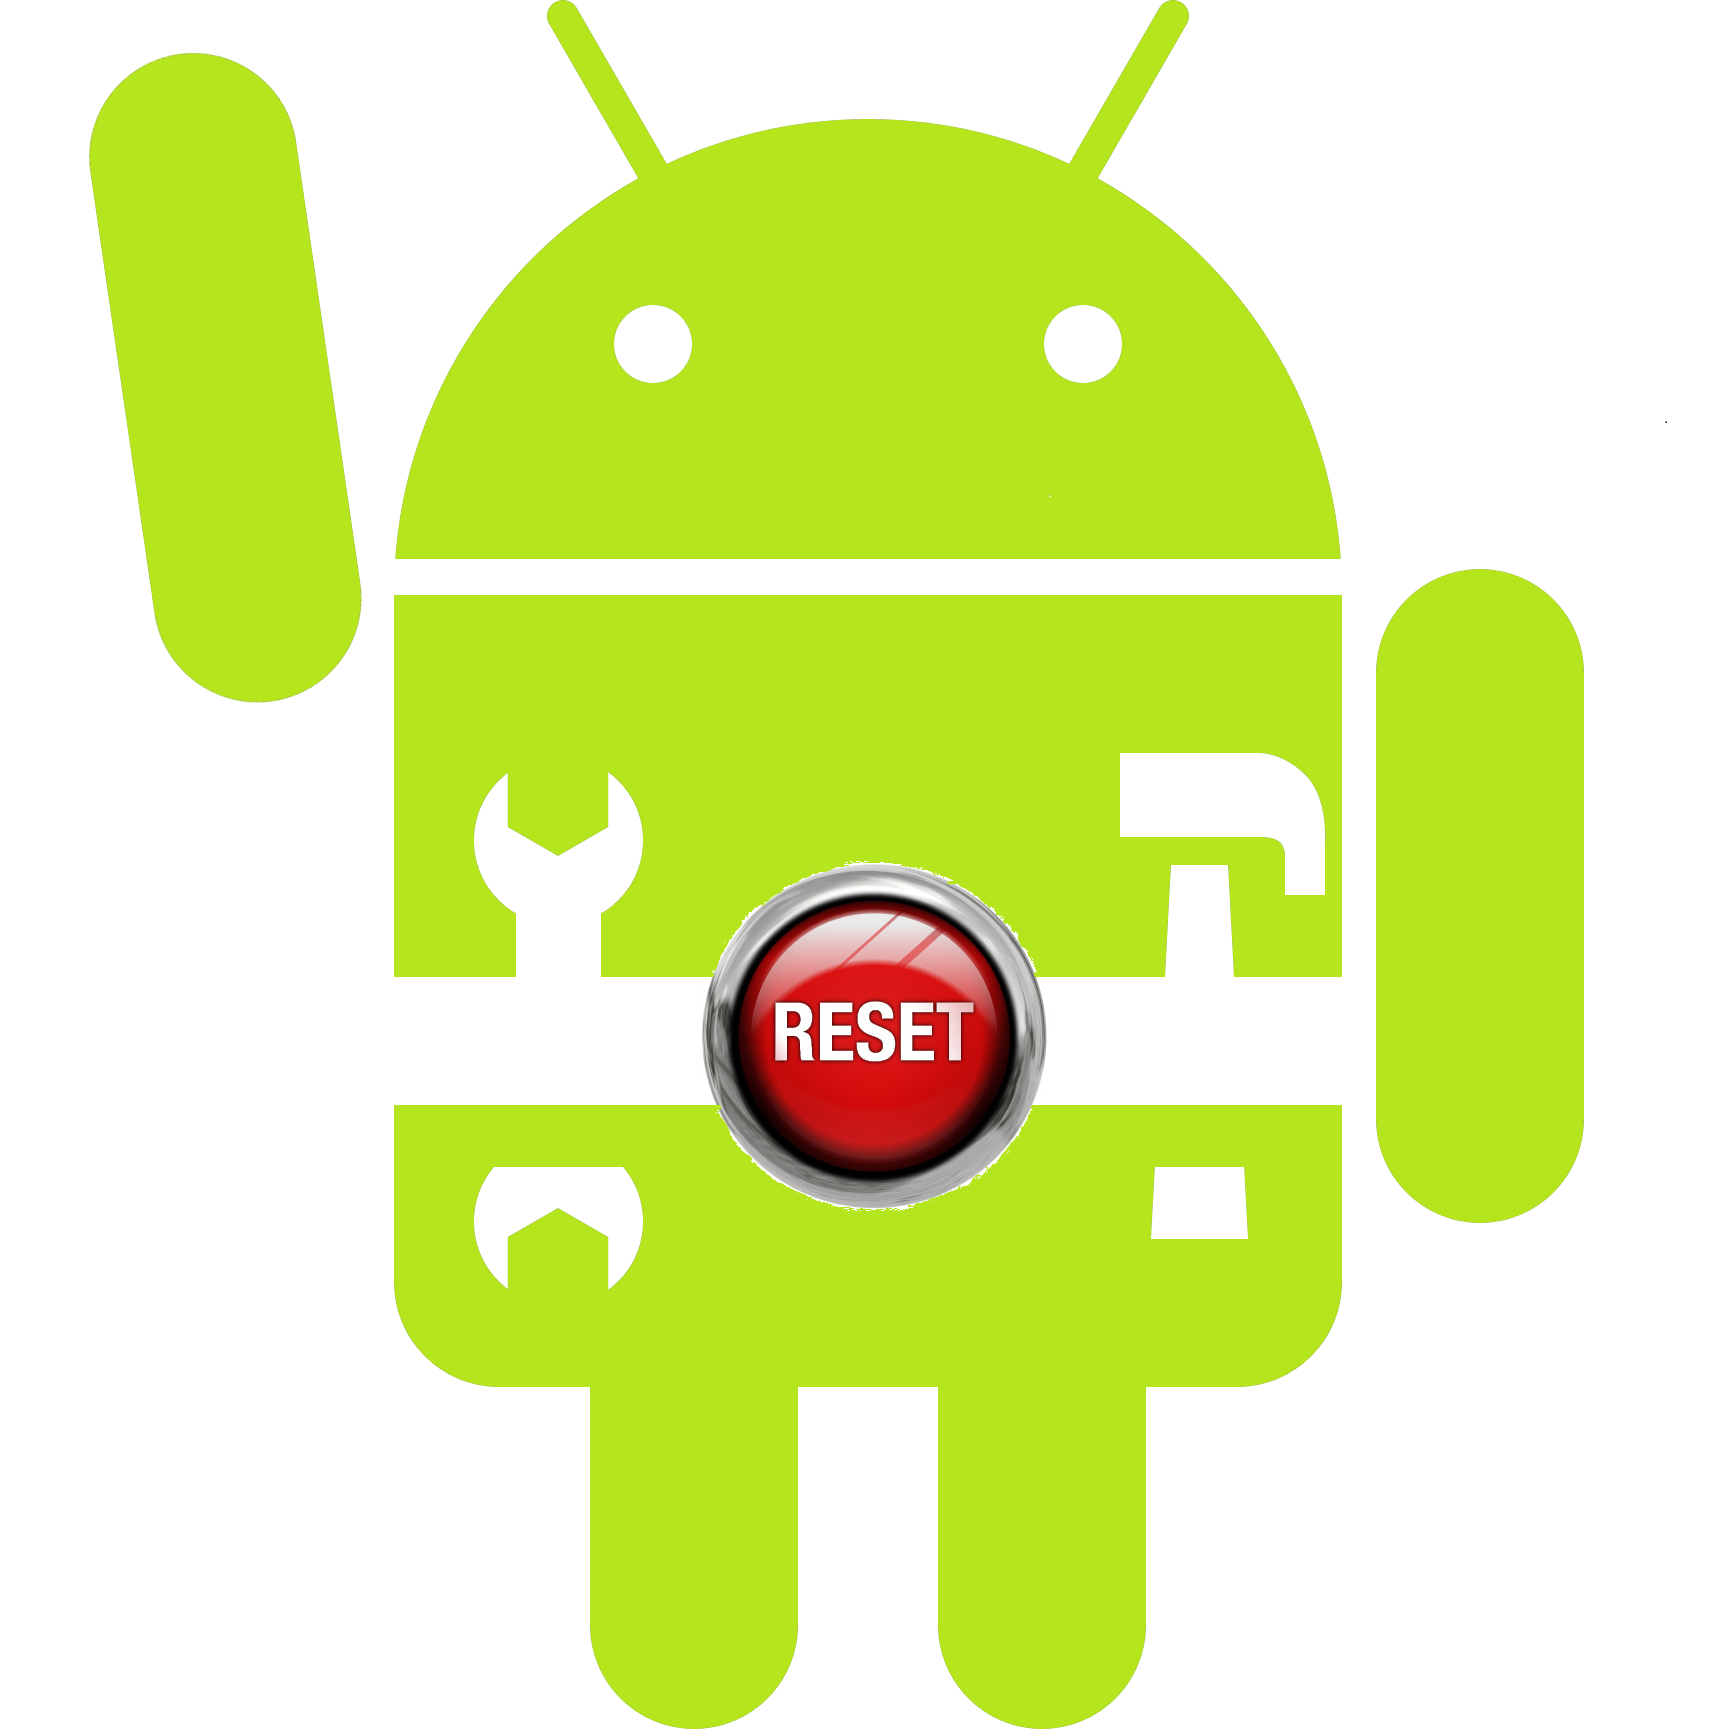 How to Perform Hard Reset on Your Android Phone or Tablet (Restore Factory Settings)